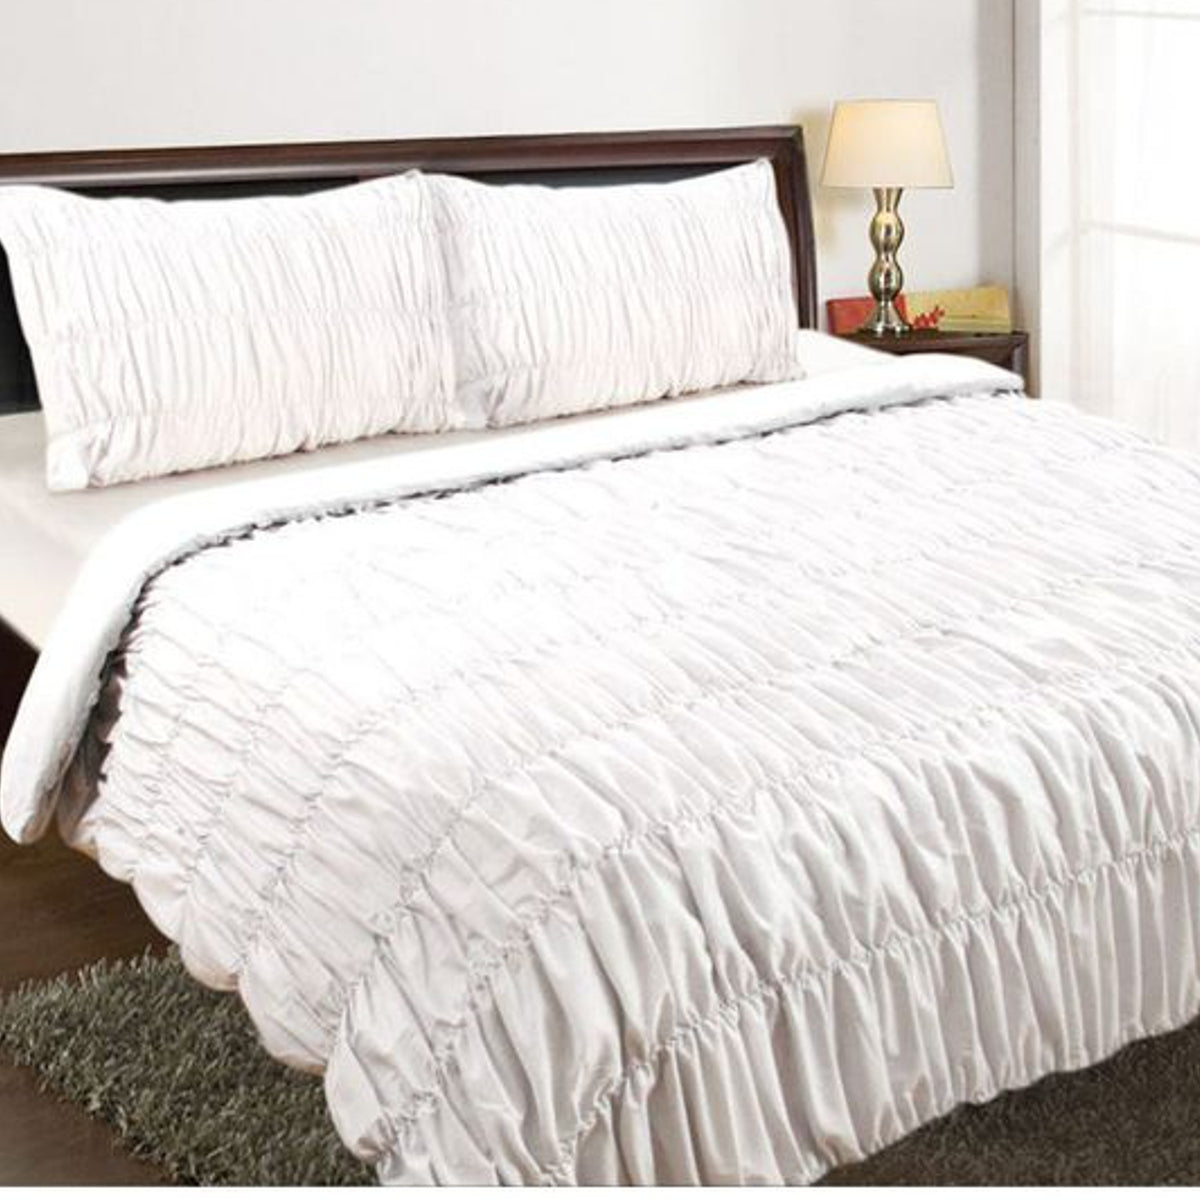 green bedding kitchen home dp twister com full set white duvet cover ruched mini piece comforter ref amazon queen